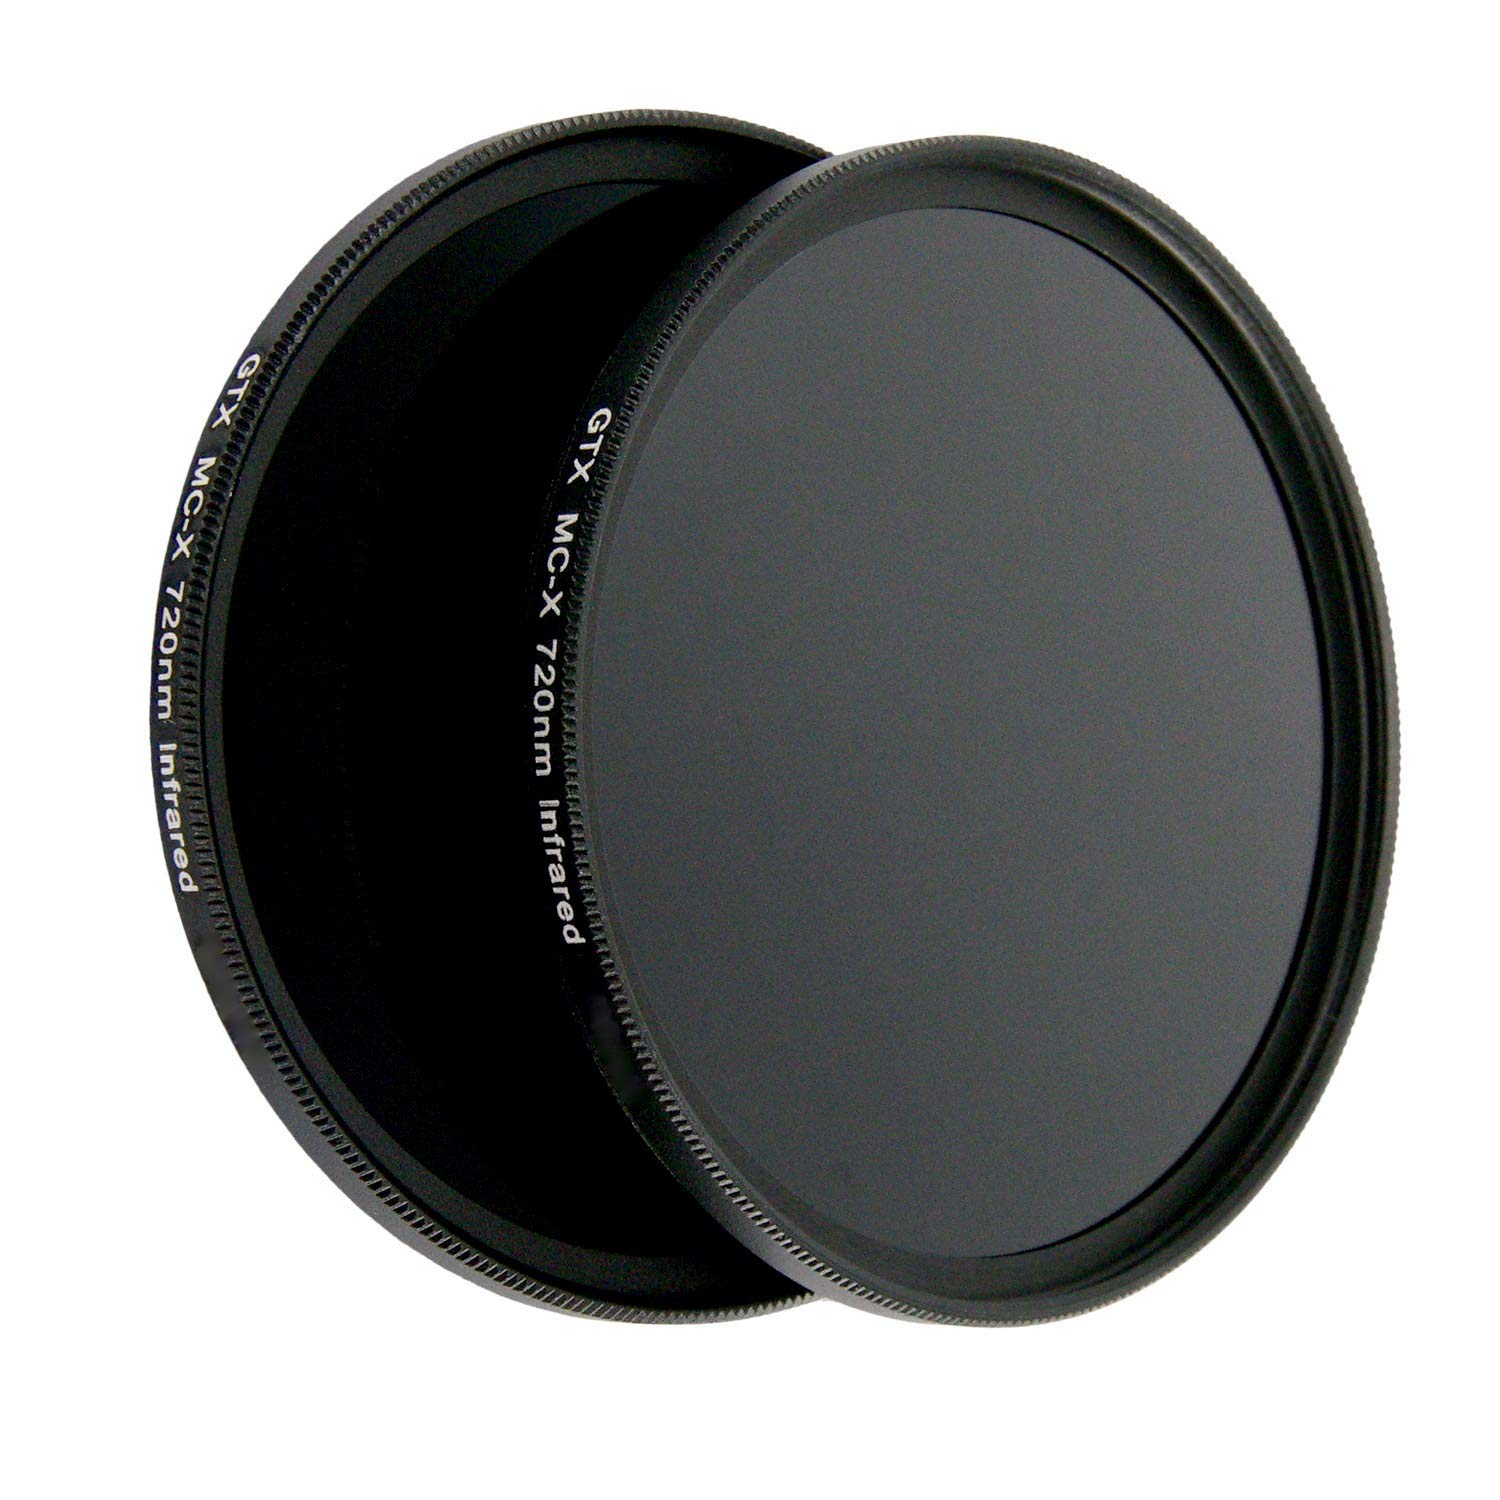 55mm X-Series IR720 IR 720nm Infrared Filter for Camera Lens Digital DSLR SLR by Sunset Foto